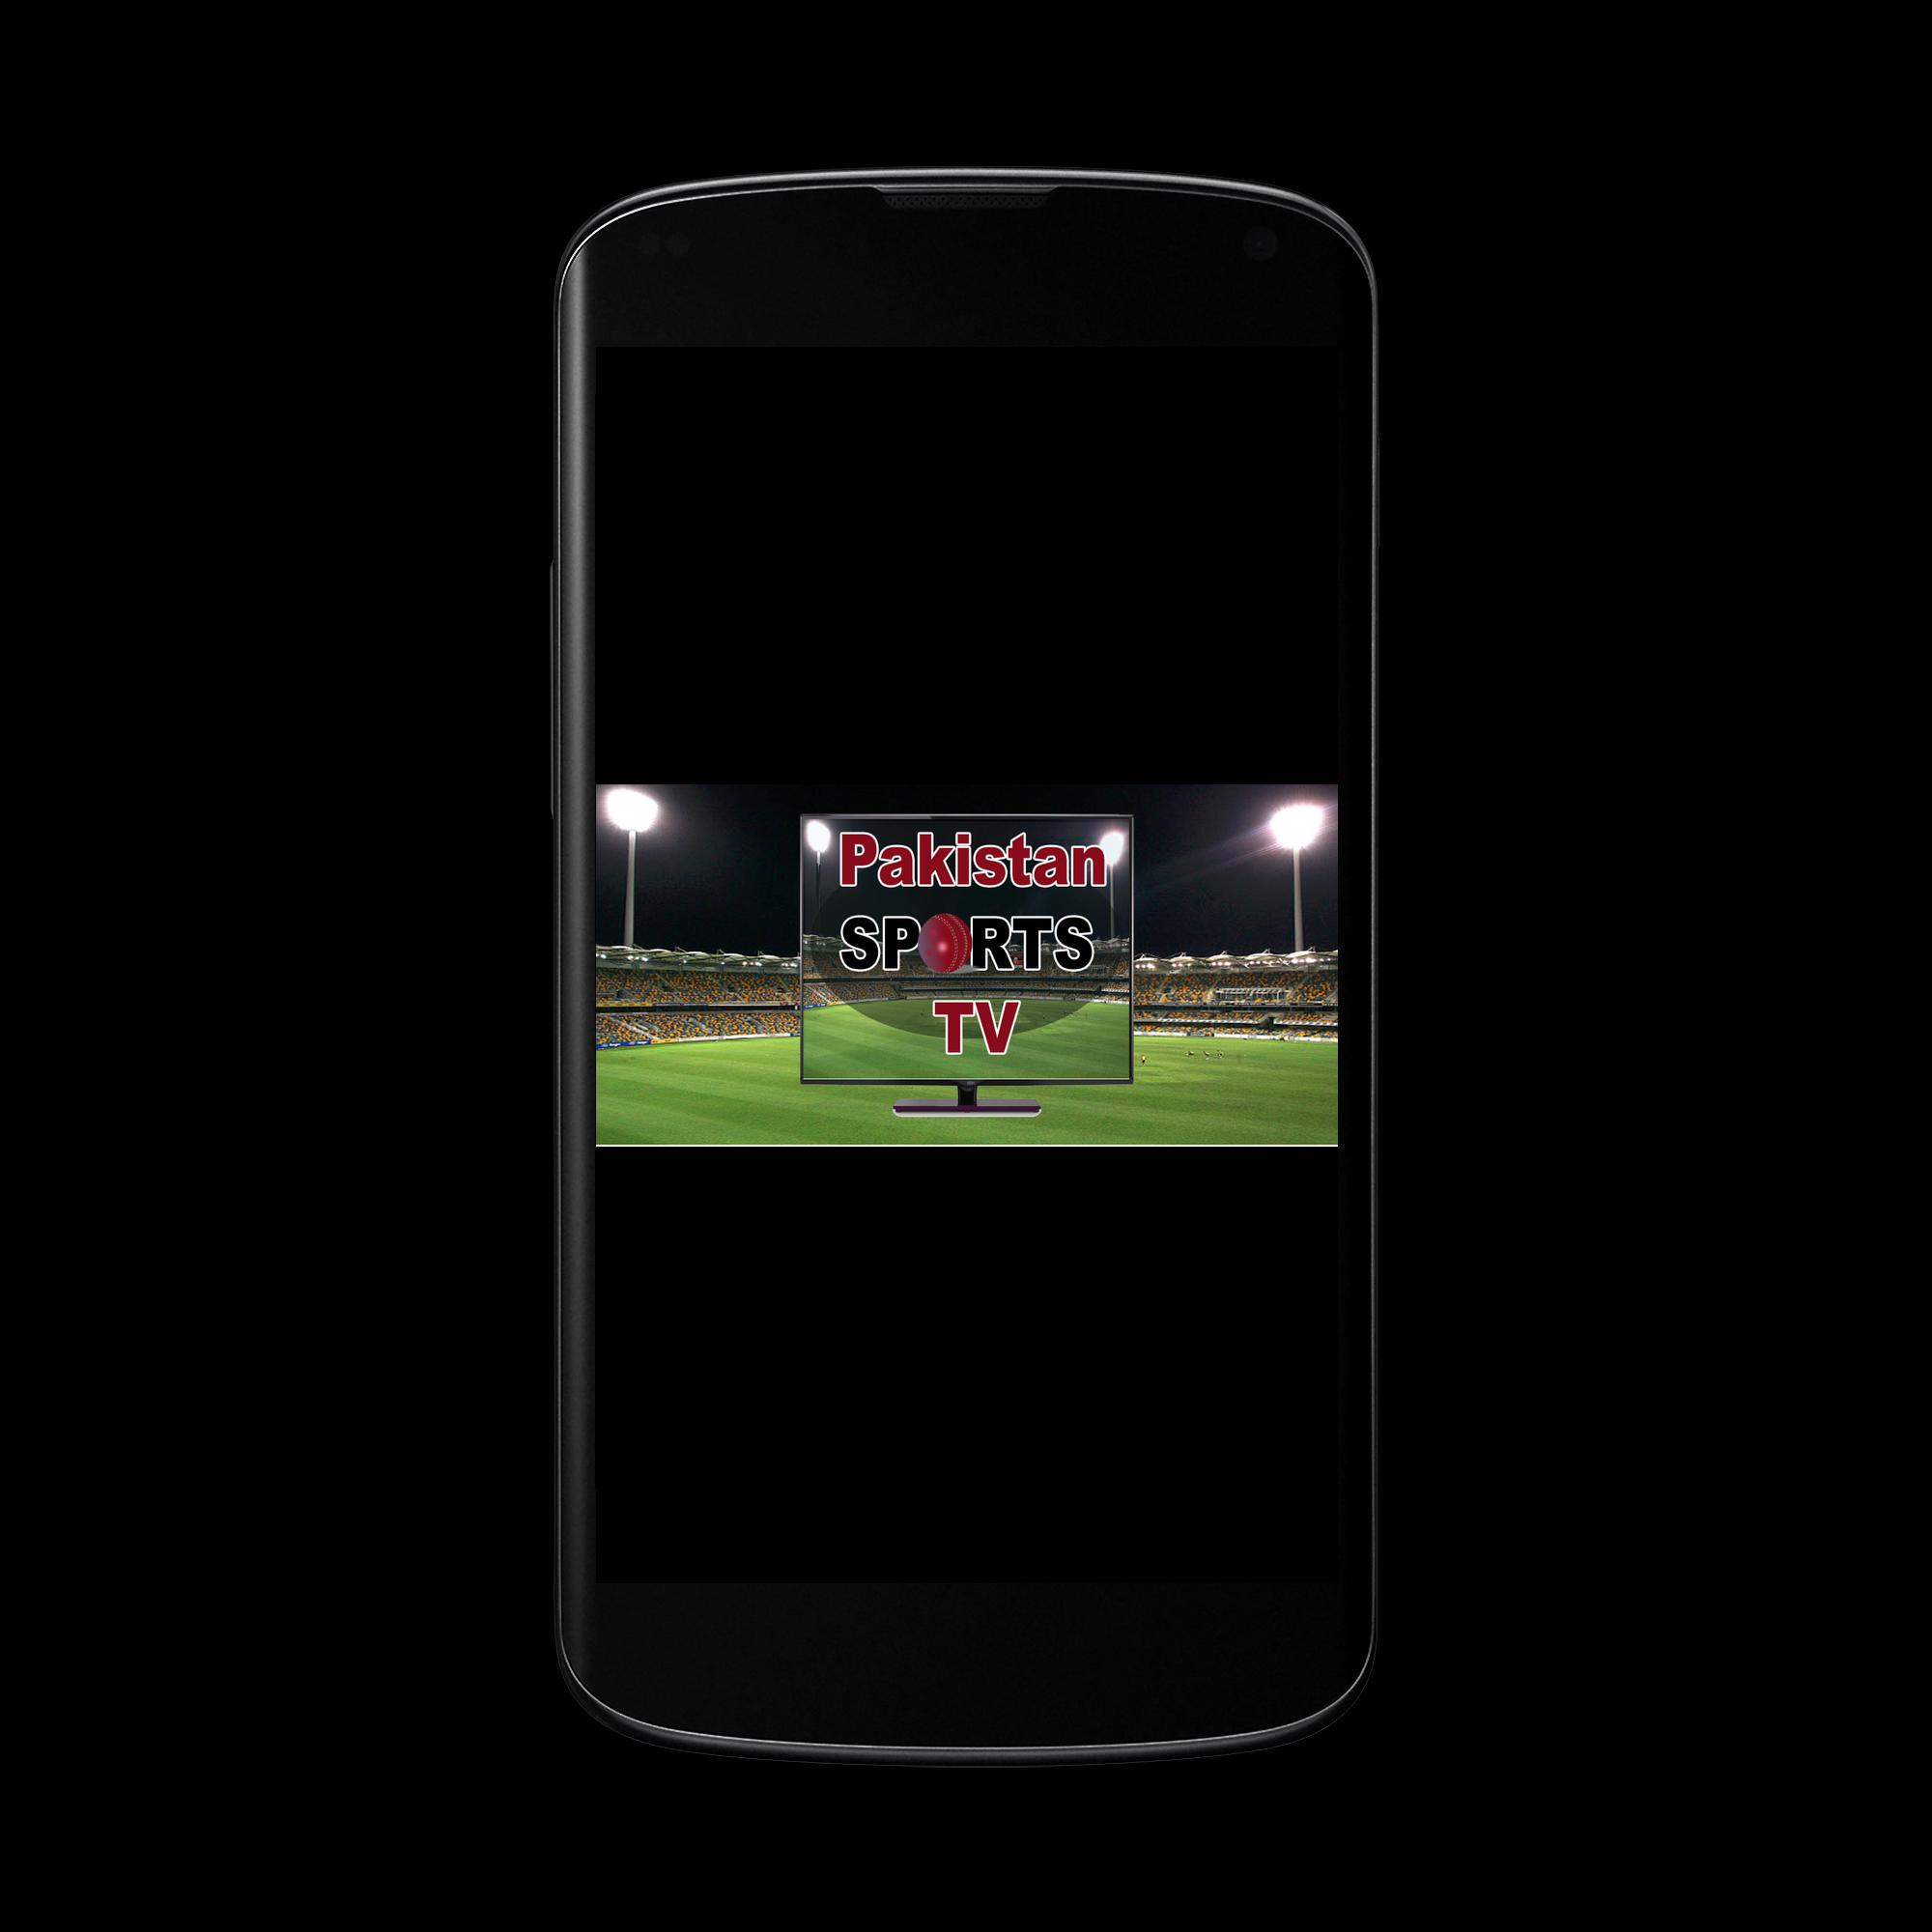 Live Sports Tv PSL for Android - APK Download